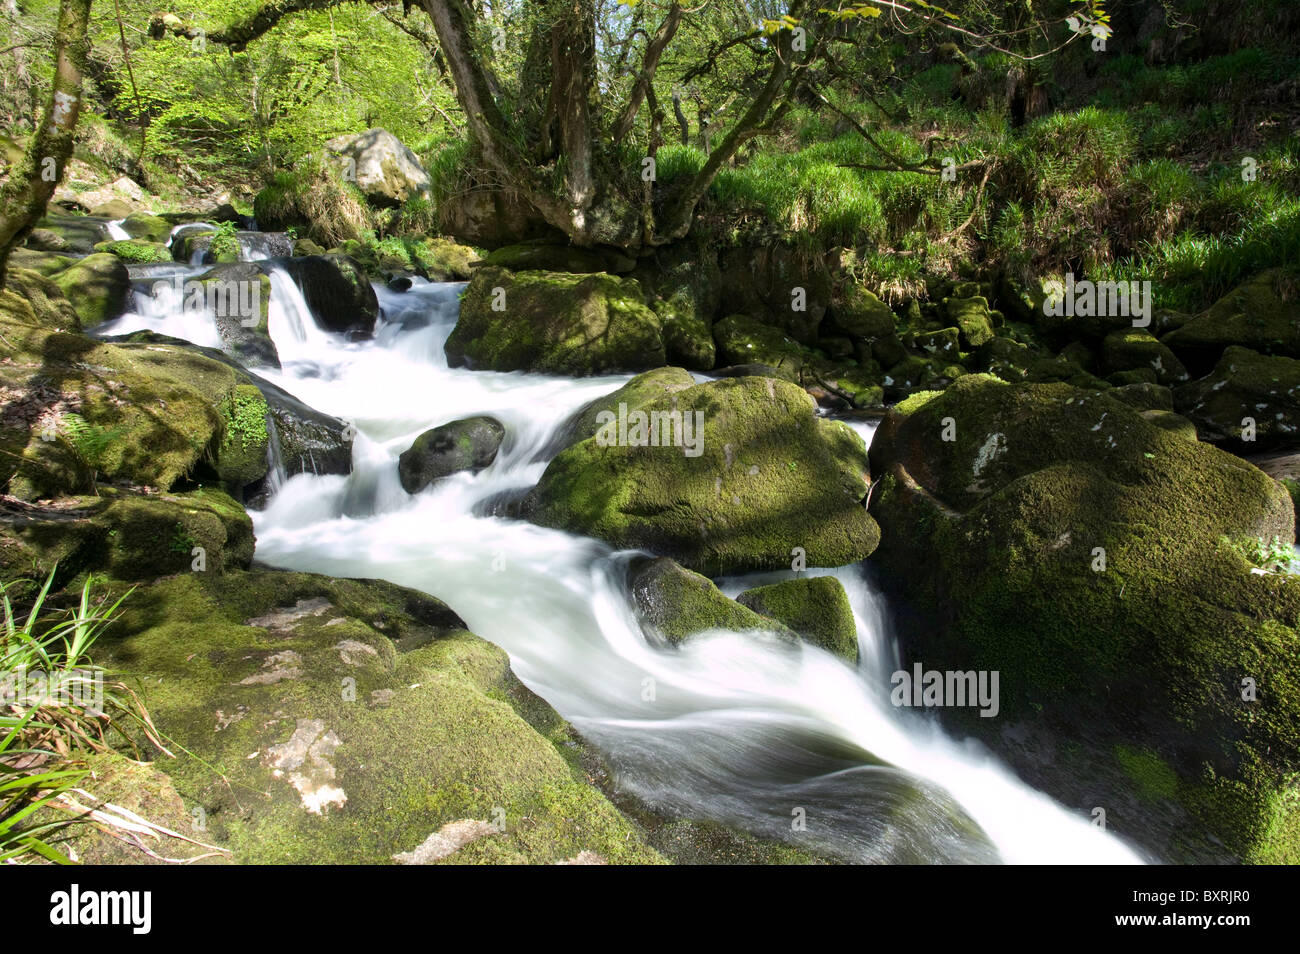 Great Britain, England, Cornwall, Bodmin Moor, Golitha Falls on the River Fowey - Stock Image